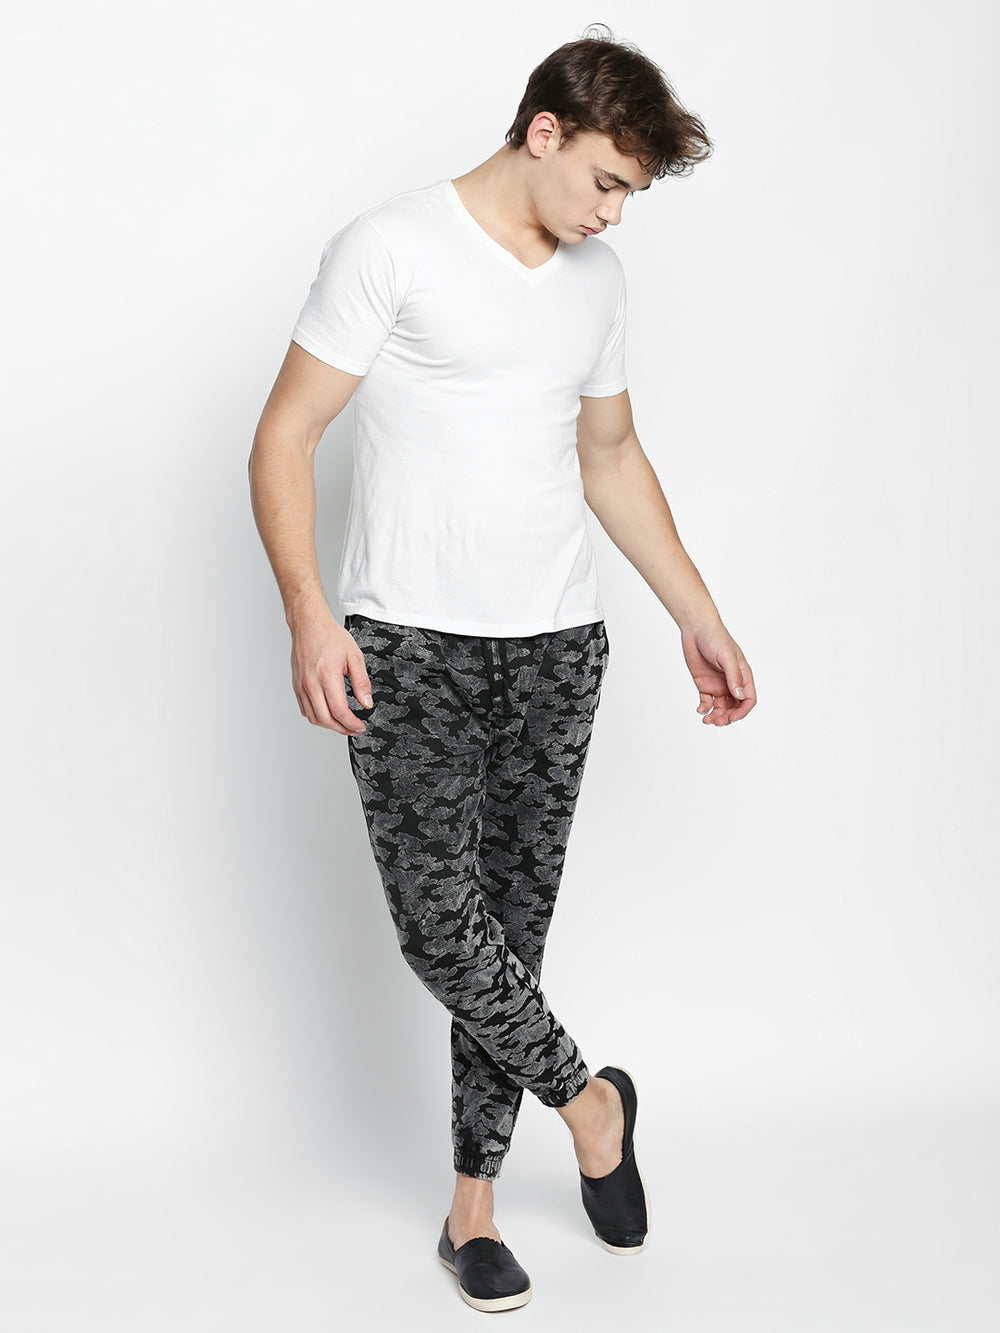 Disrupt Black Camouflage Pattern Cotton Joggers For Men's